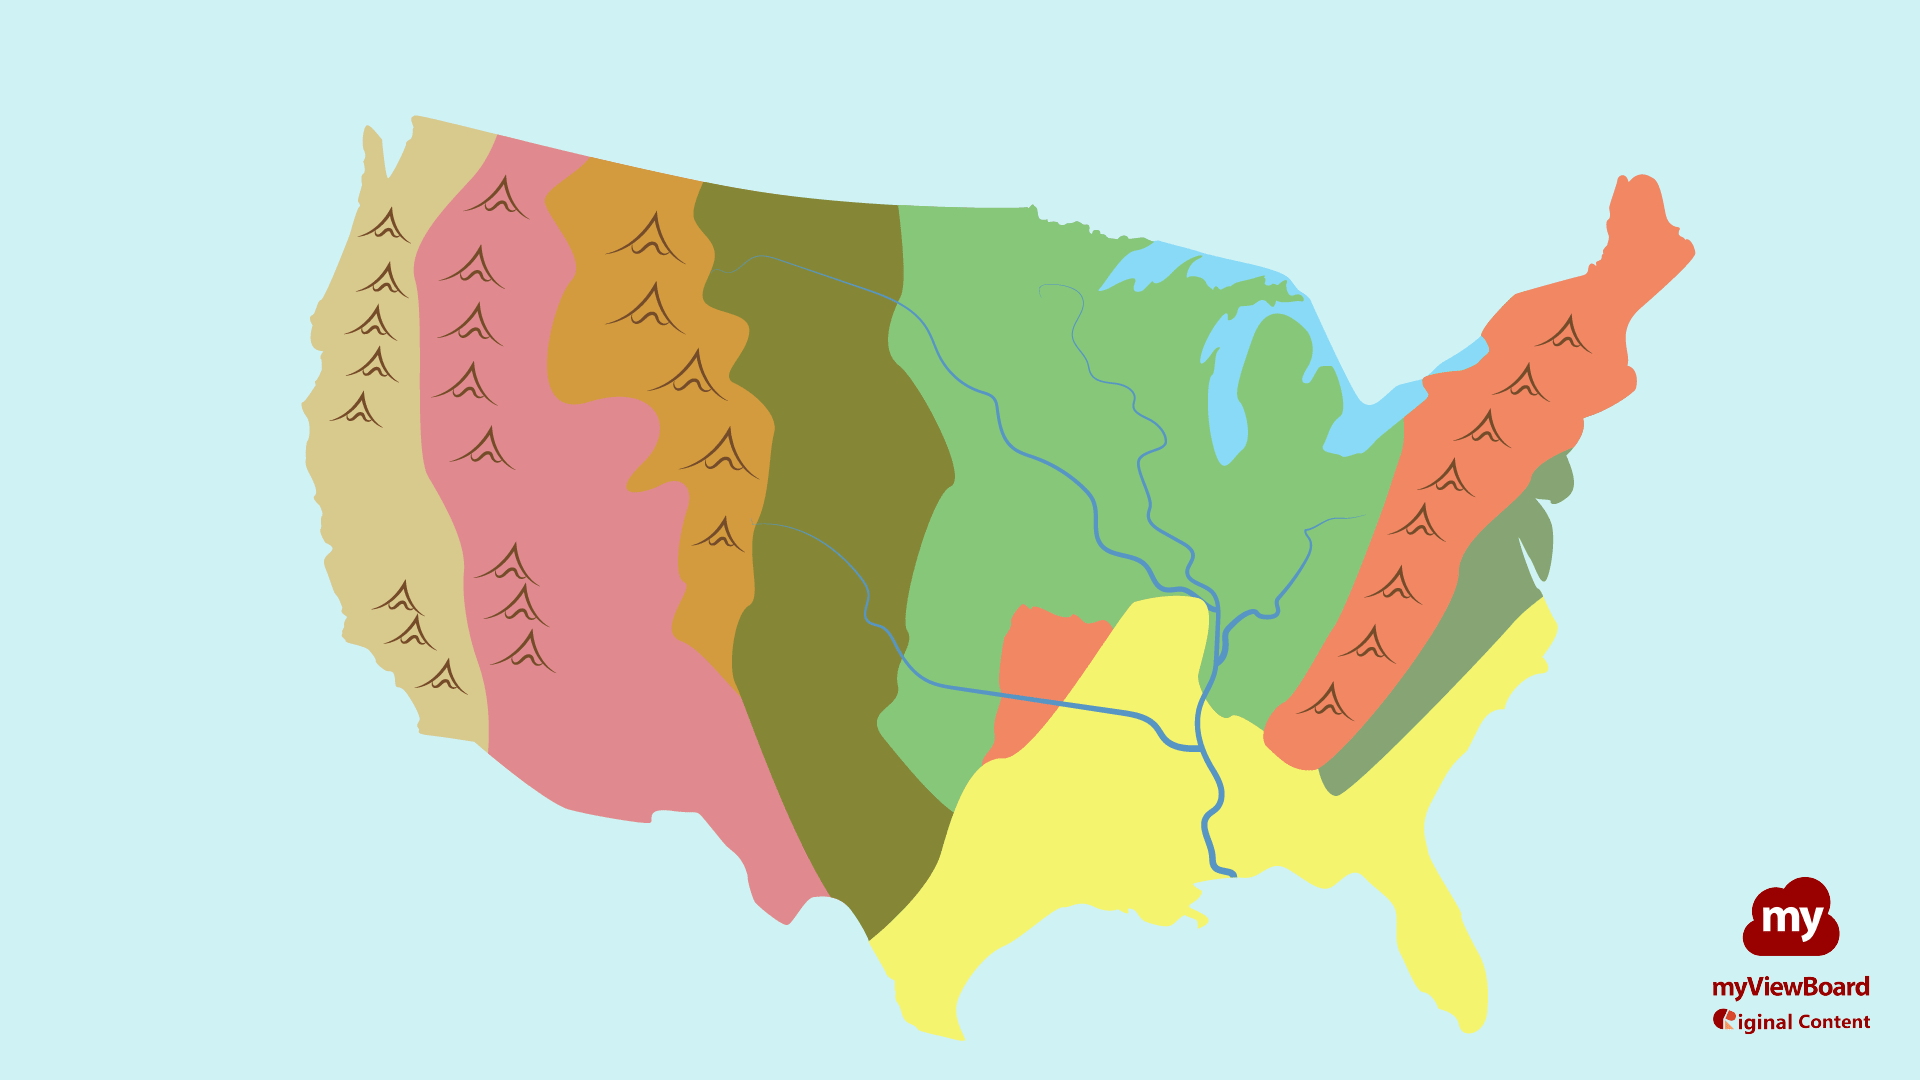 OCBnew thumbnail Terrain of the United States logo Full HD.png